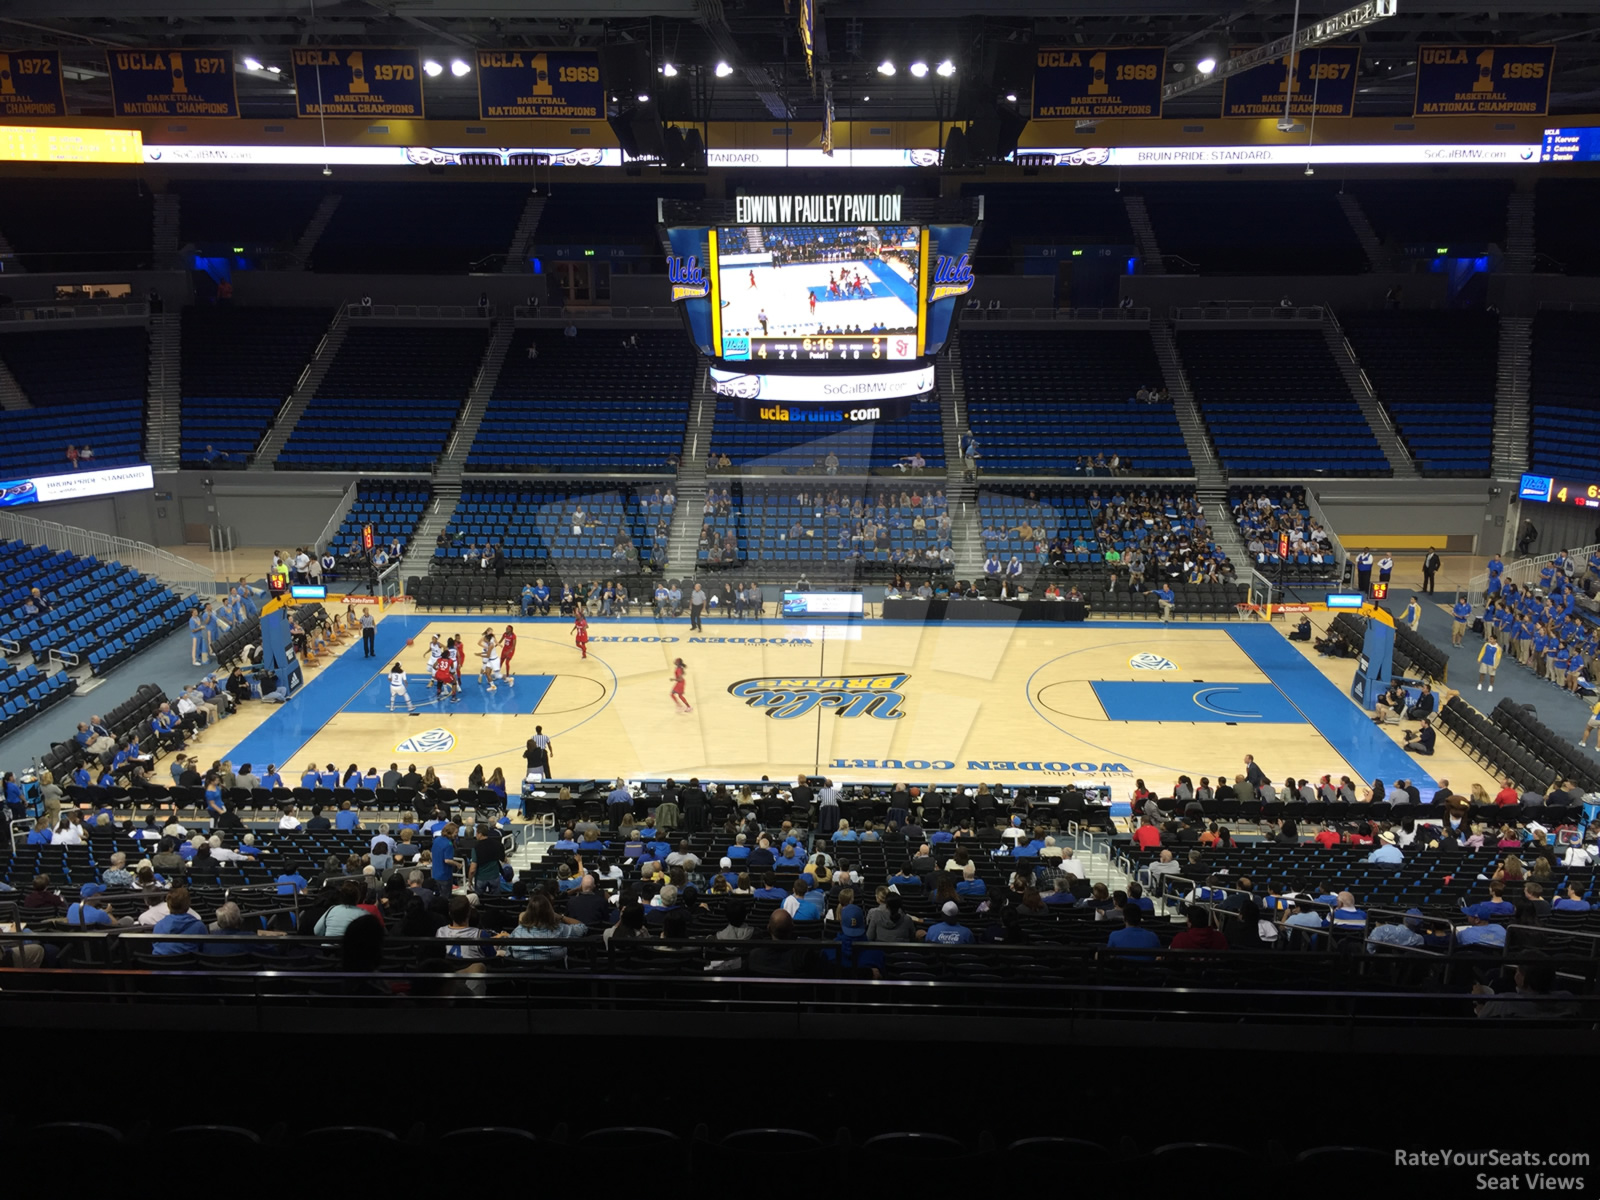 Seat View for Pauley Pavilion Section 202, Row 6